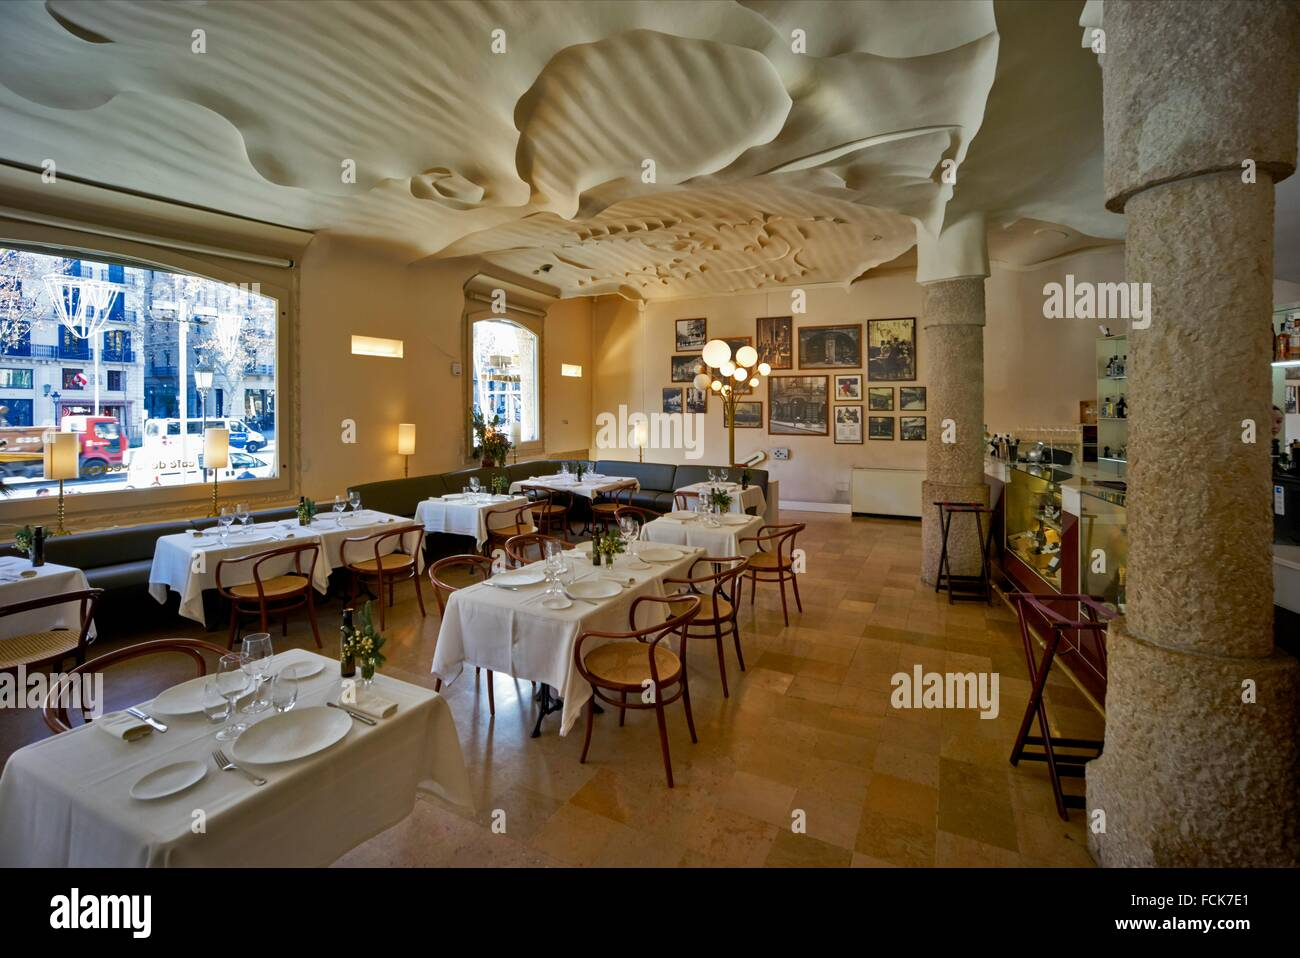 The interior of Caf Pedrera at the ground floor of Casa Mila Stock Photo Royalty Free Image